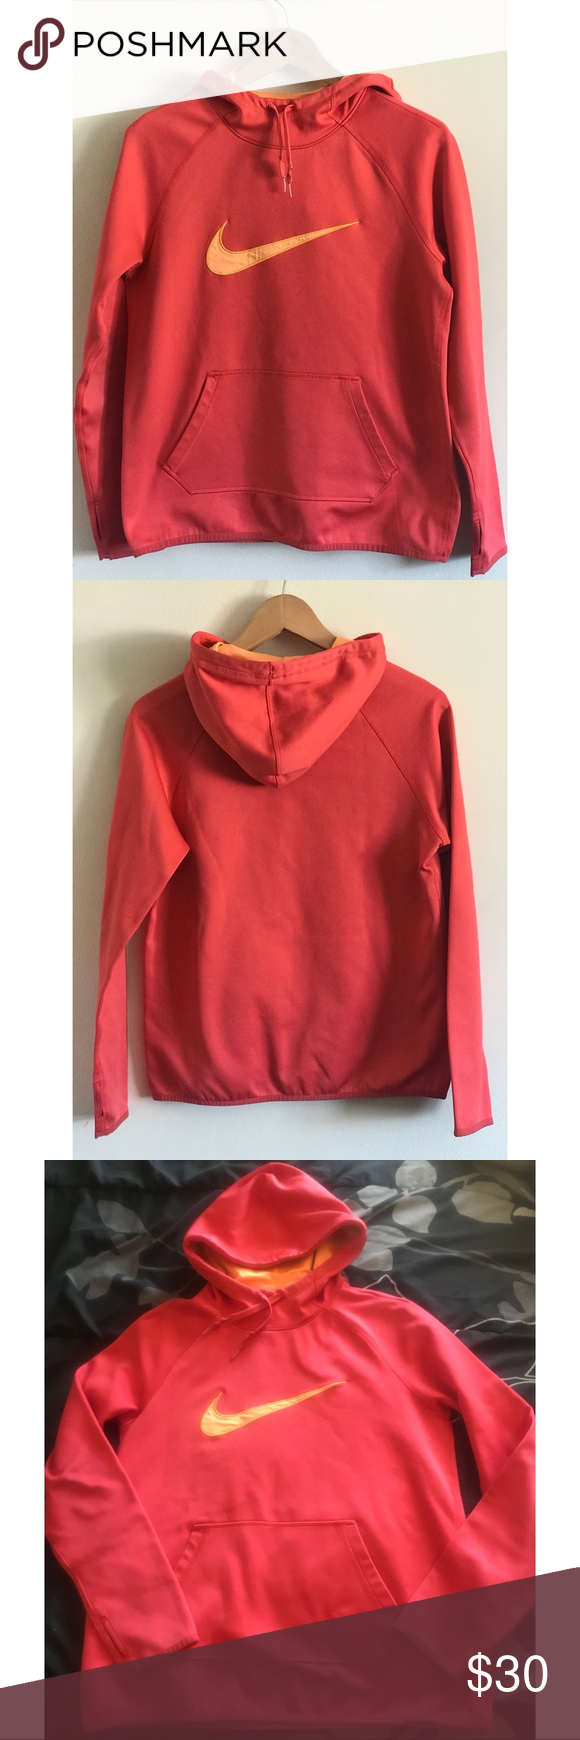 b065234e8834 Spotted while shopping on Poshmark  Nike Dri-Fit Therma Pullover Hoodie!   poshmark  fashion  shopping  style  Nike  Other